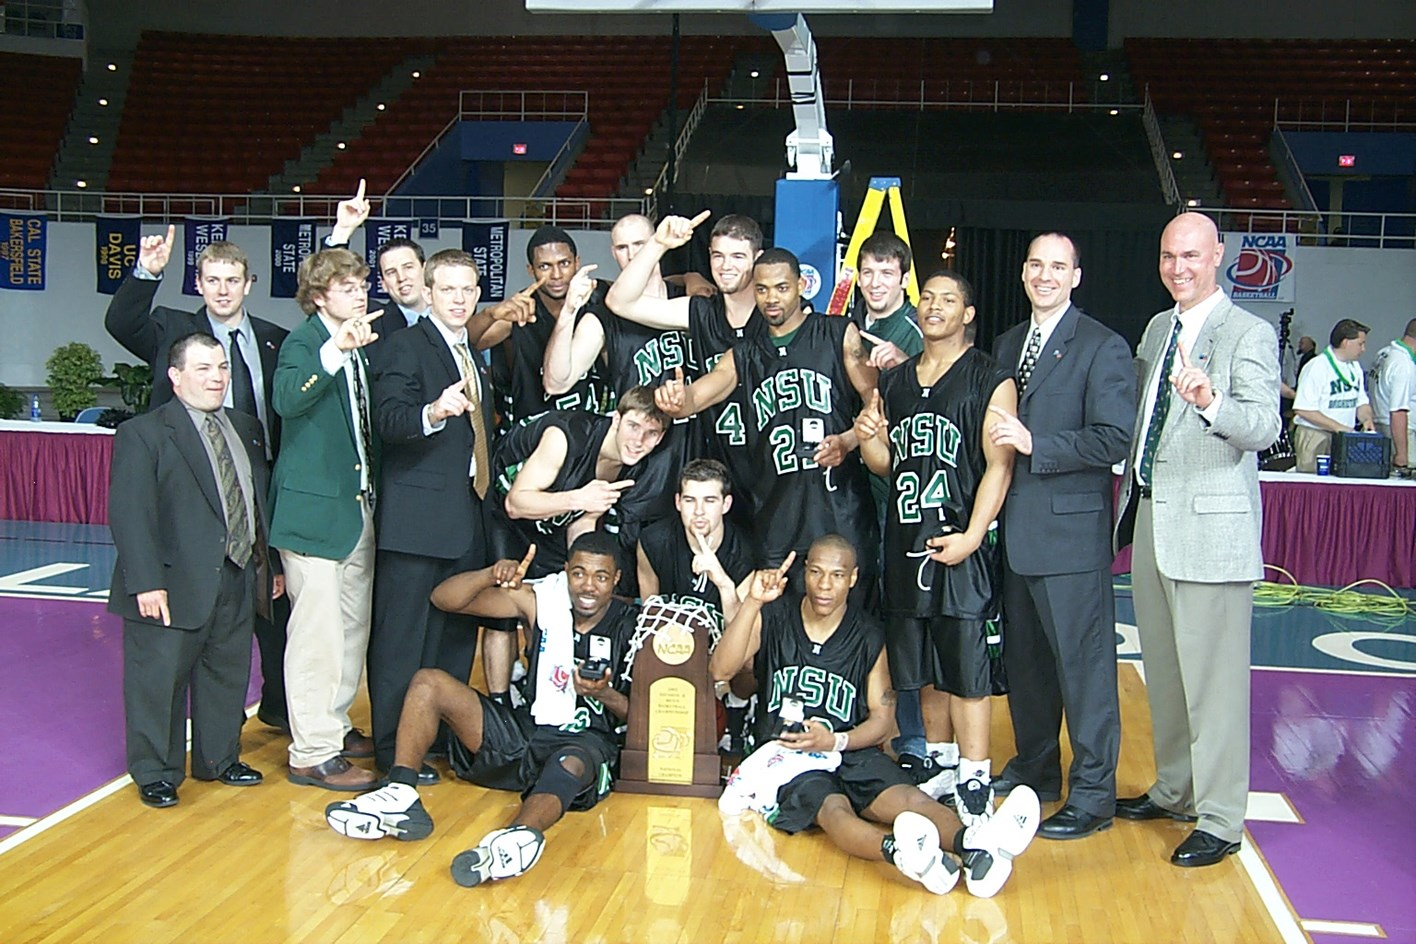 2003 National Championship Team To Be Inducted Into Nsu Hall Of Fame